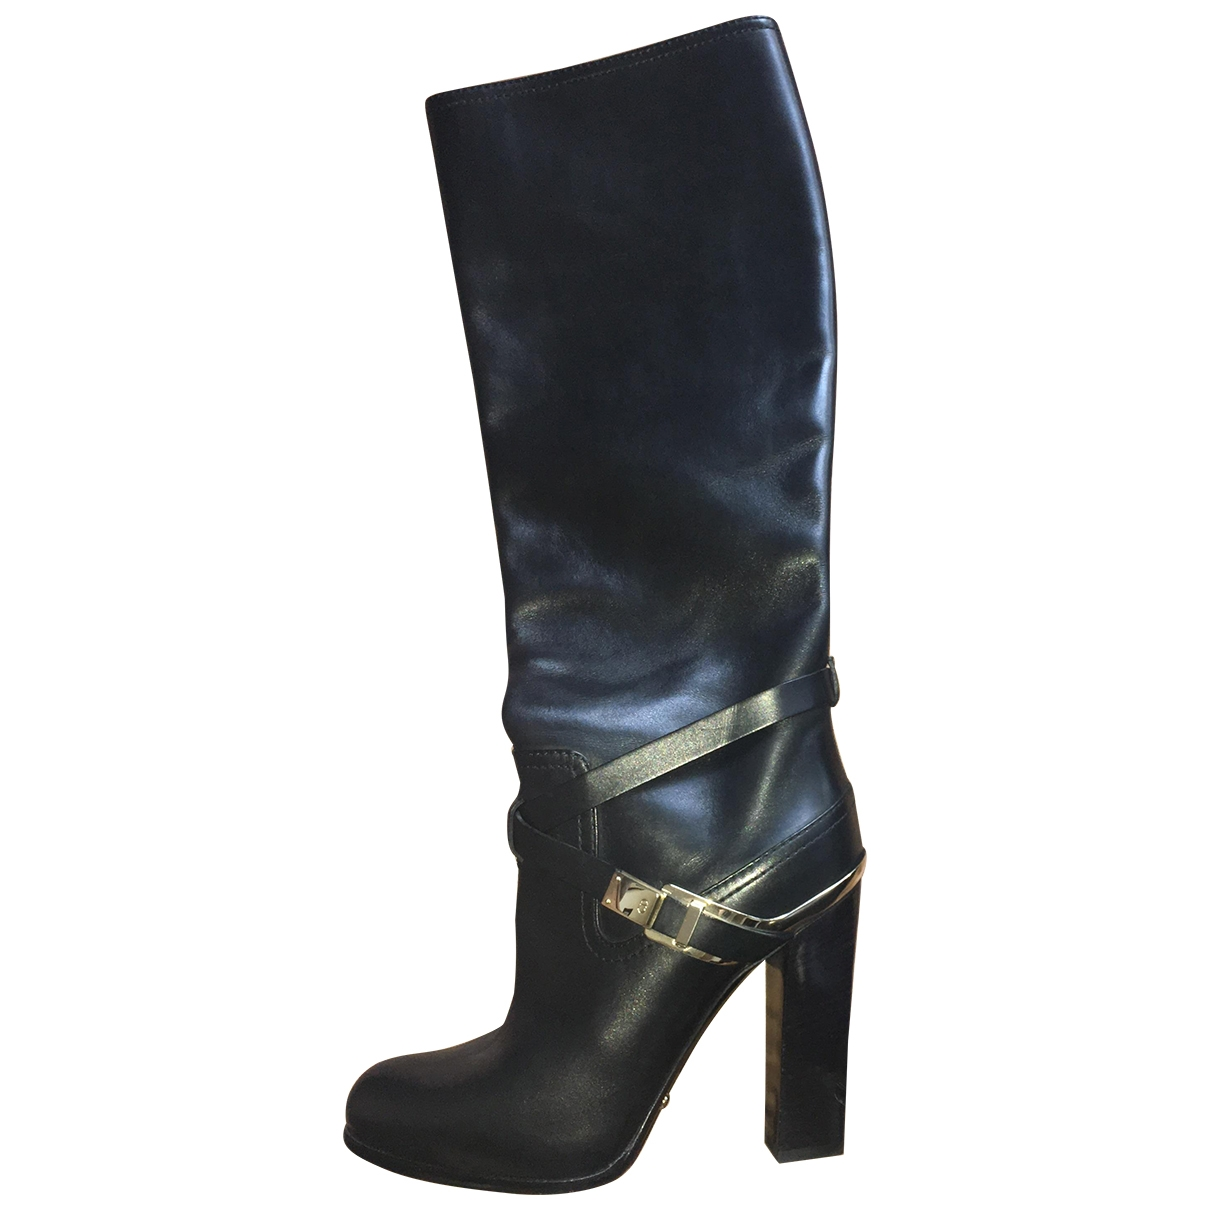 Dior \N Black Leather Boots for Women 36.5 EU